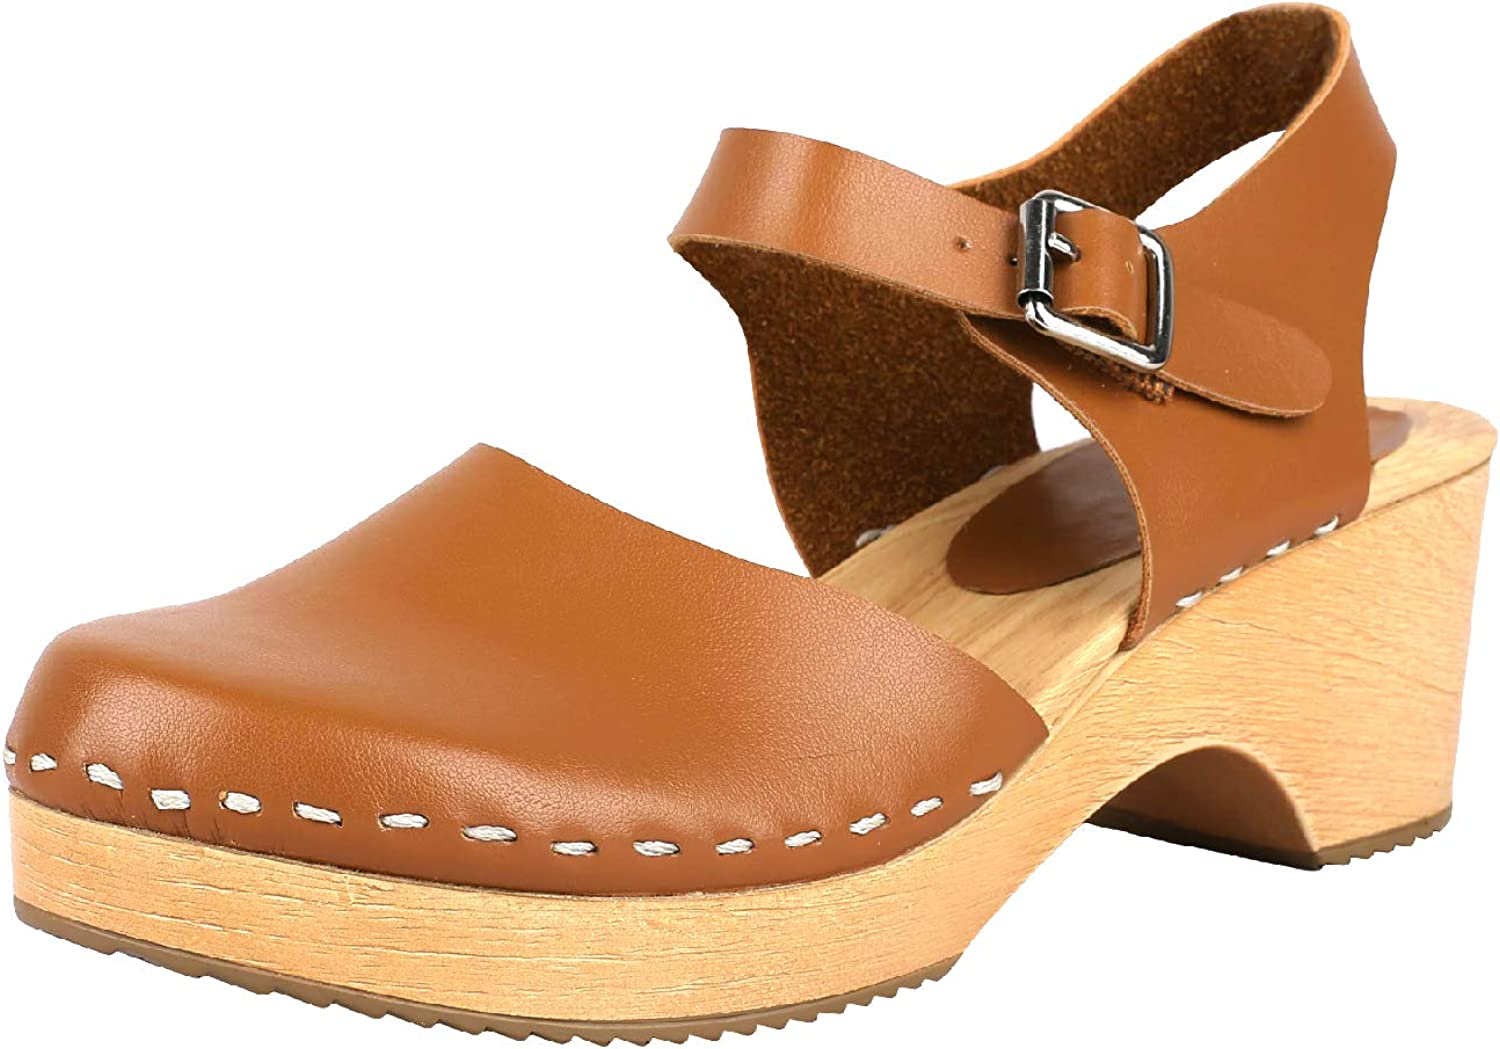 Ruanyu Womens Platform Clogs Sandals Closed Toe Wooden Heel Ankle Strap Buckle Slingback Sandals Brown